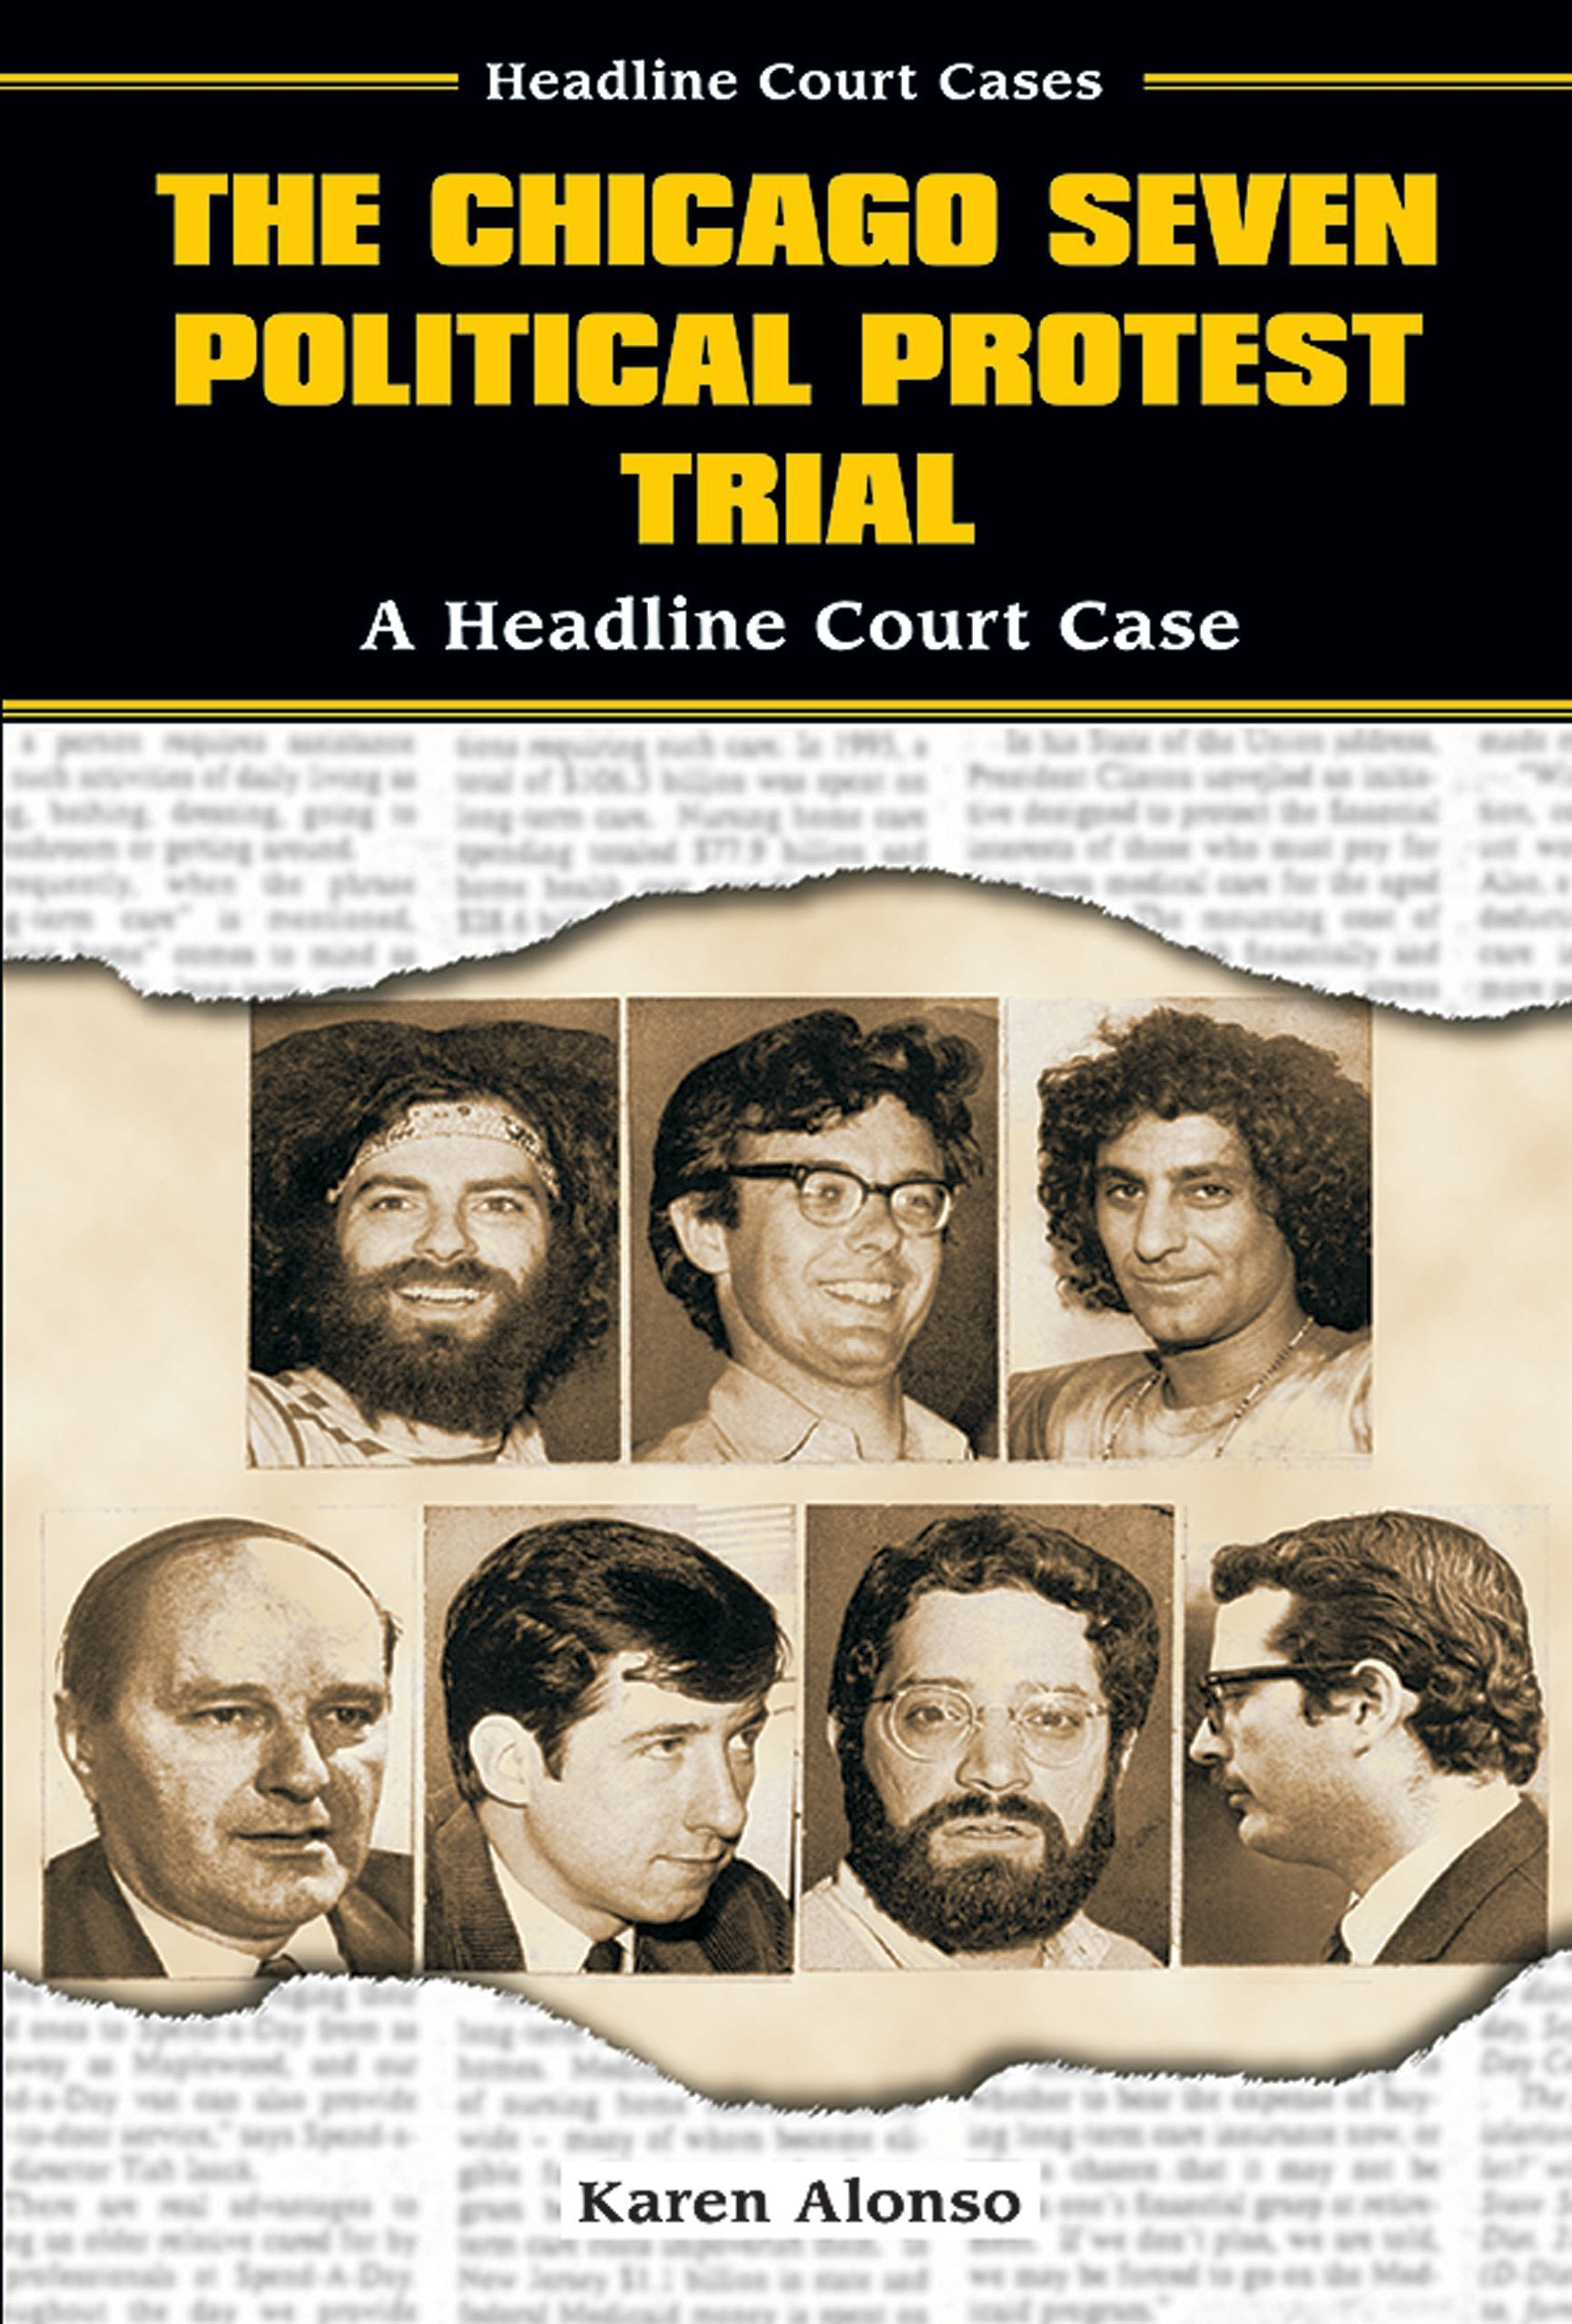 Download The Chicago Seven Political Protest Trial: A Headline Court Case (Headline Court Cases) PDF